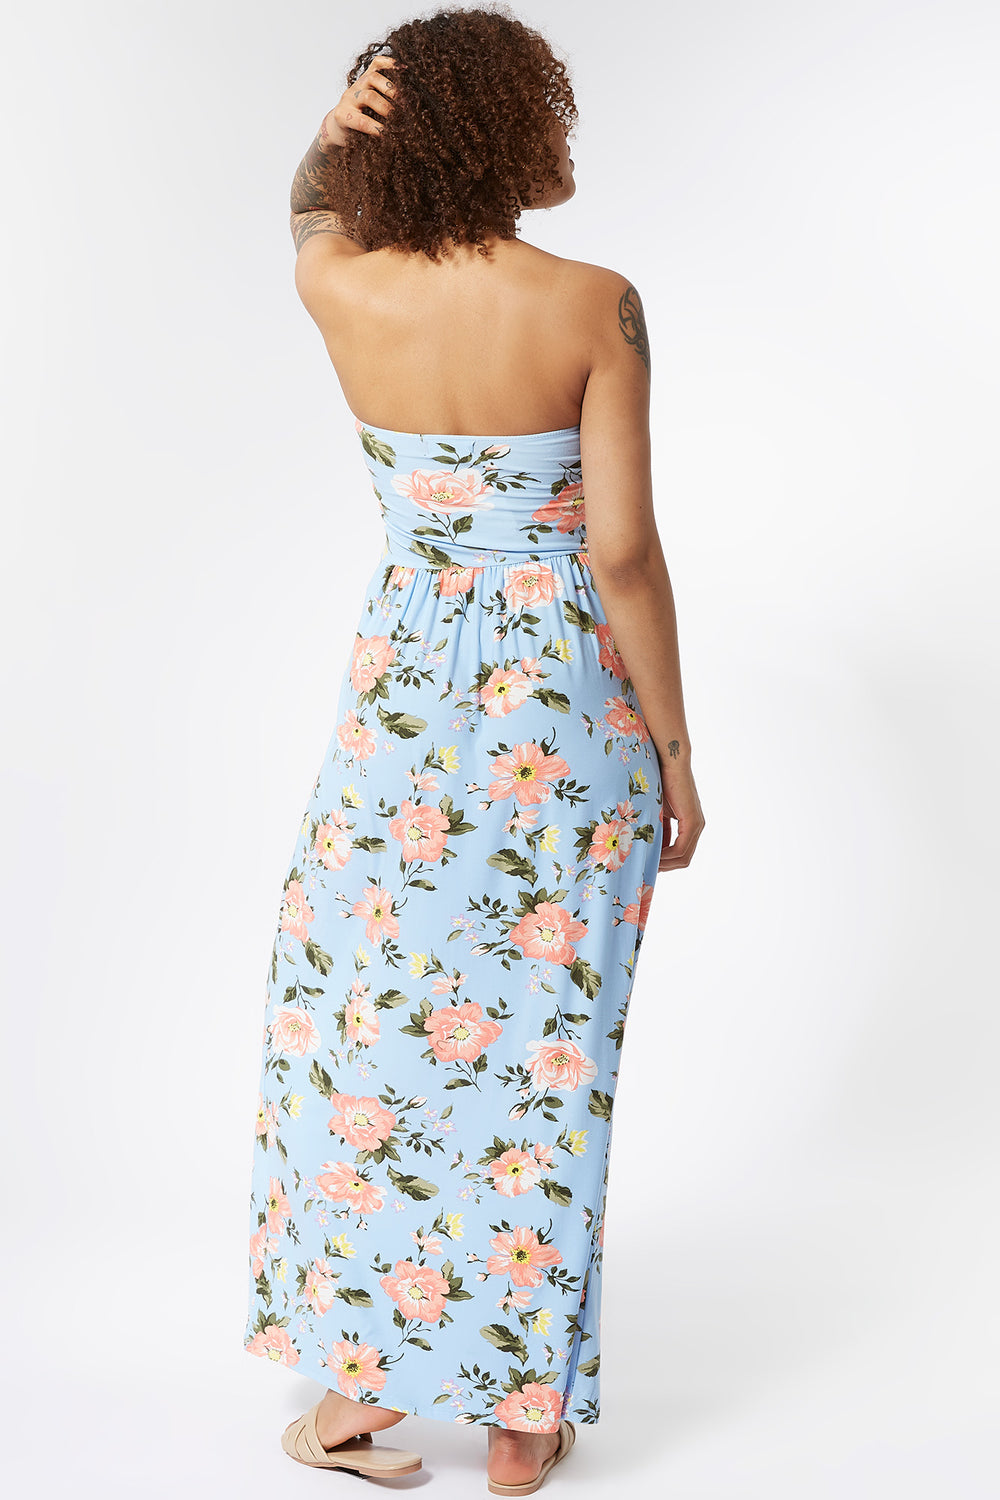 Soft Floral Strapless Ruched Maxi Dress Teal